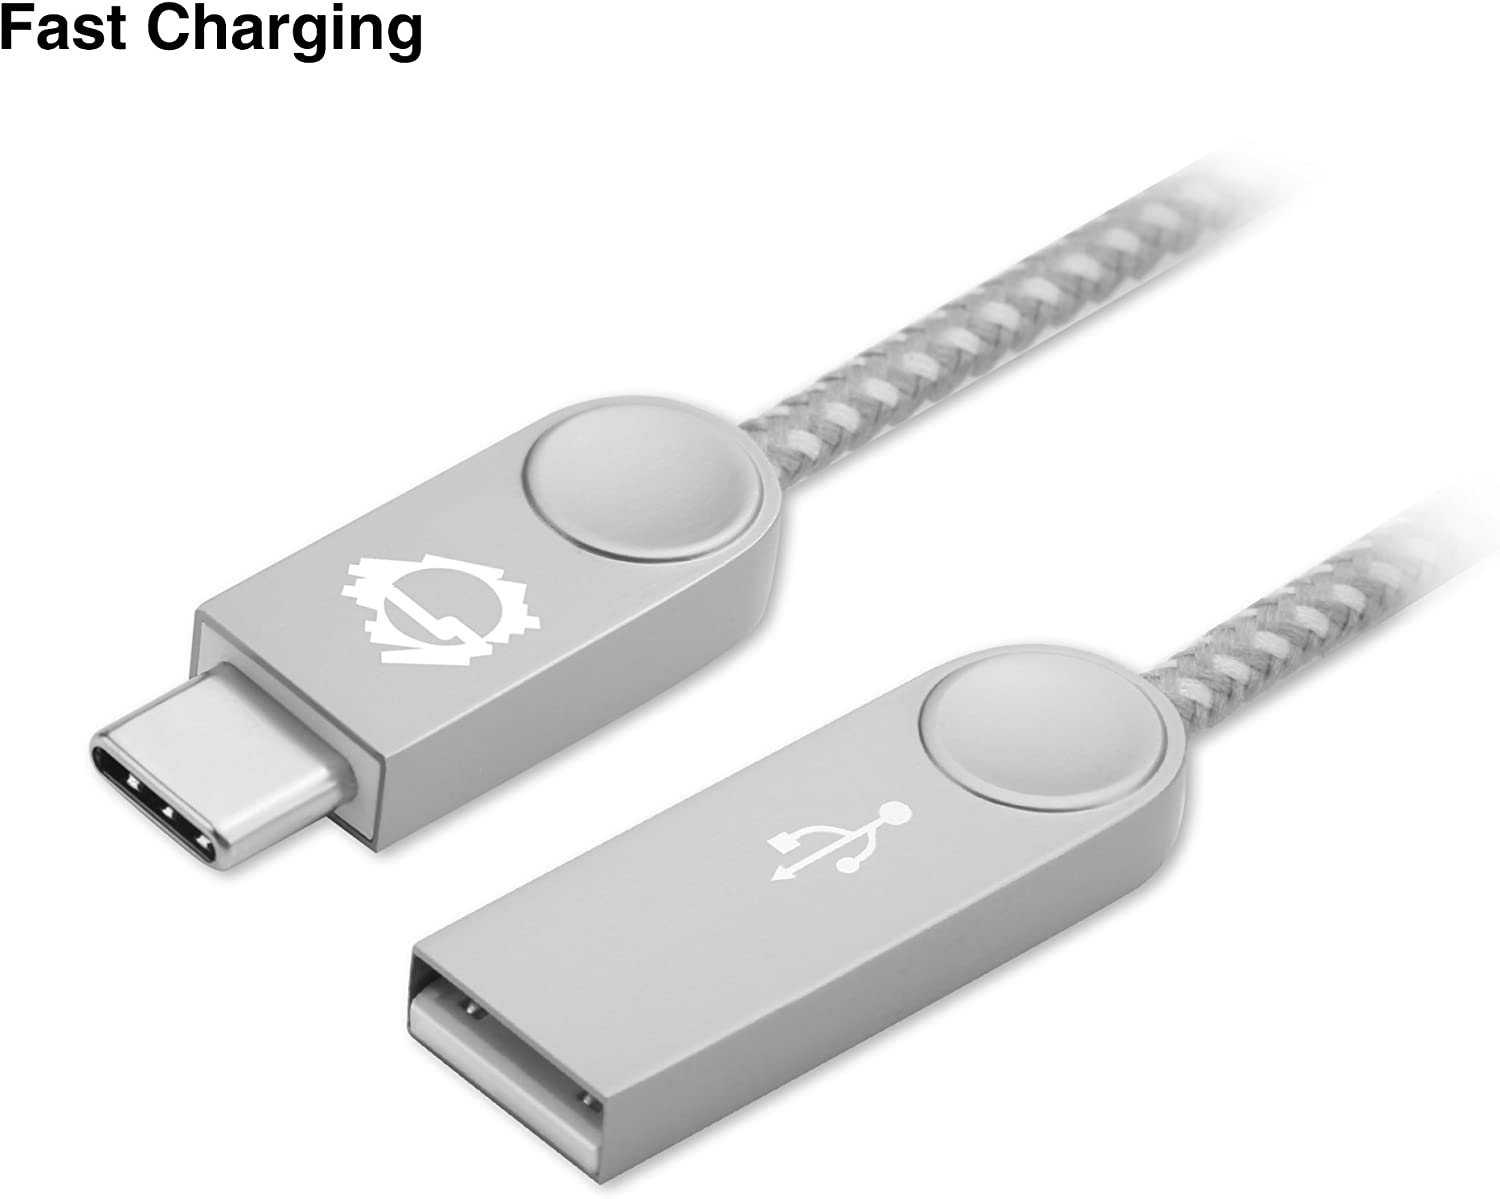 3.3ft SIIG Premium Zinc Alloy USB-C to USB-A Charging /& Sync Braided Cable - Low Profile Design 2-Pack